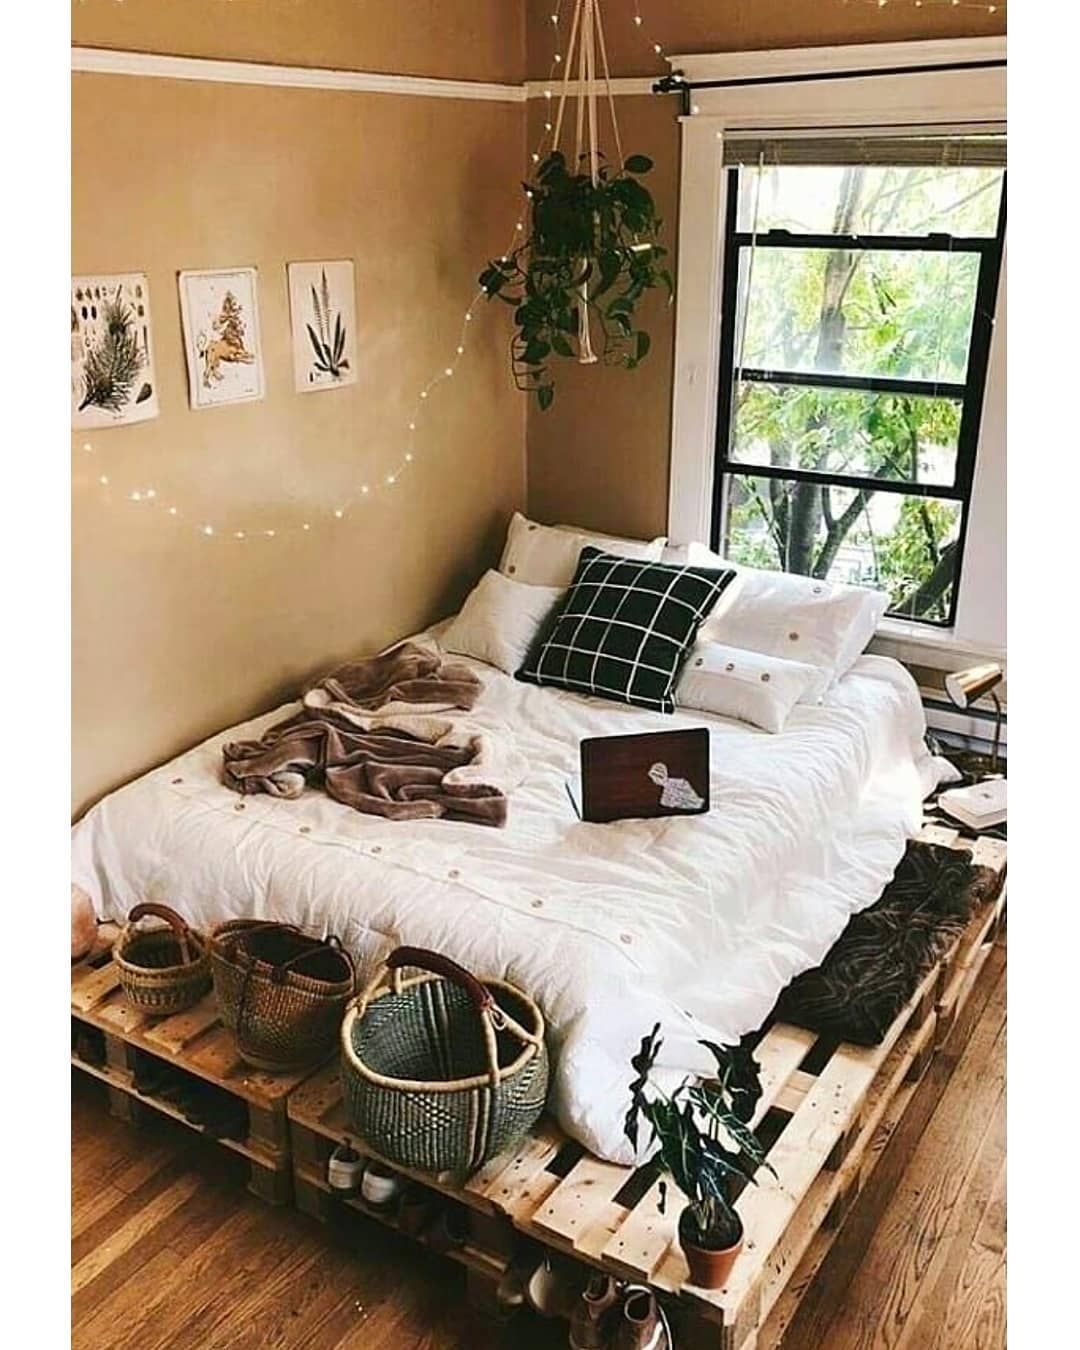 claire colbear homedecoronabudget aesthetic rooms cozy bedroom decor earthy also fantastic college ideas and remodel rh pinterest